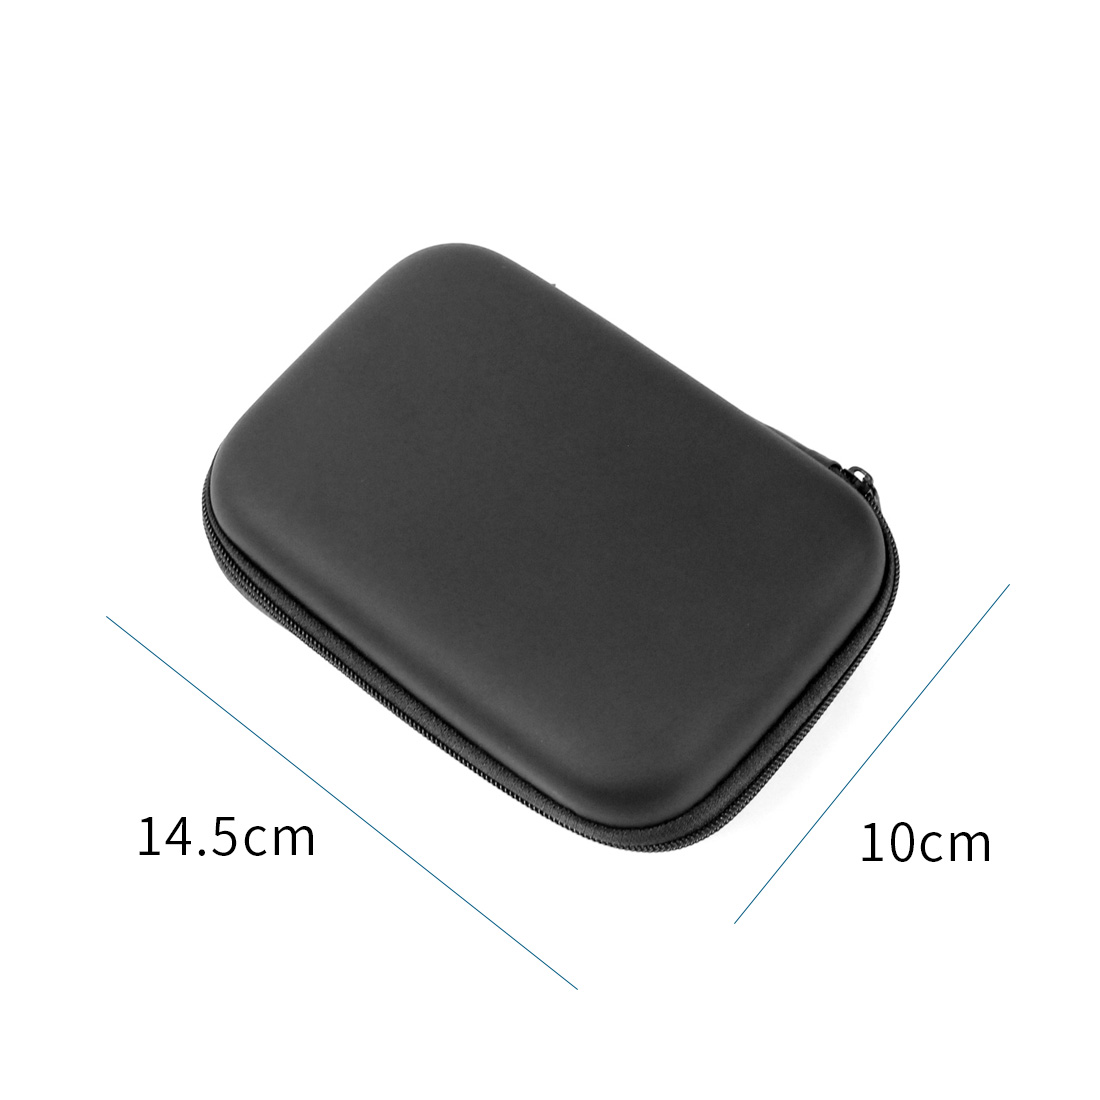 2.5 inch External Hard Drive Disk Protective Case HDD SSD Carry Bag Portable Pouch USB Cable Power Bank Organizer Storage Box